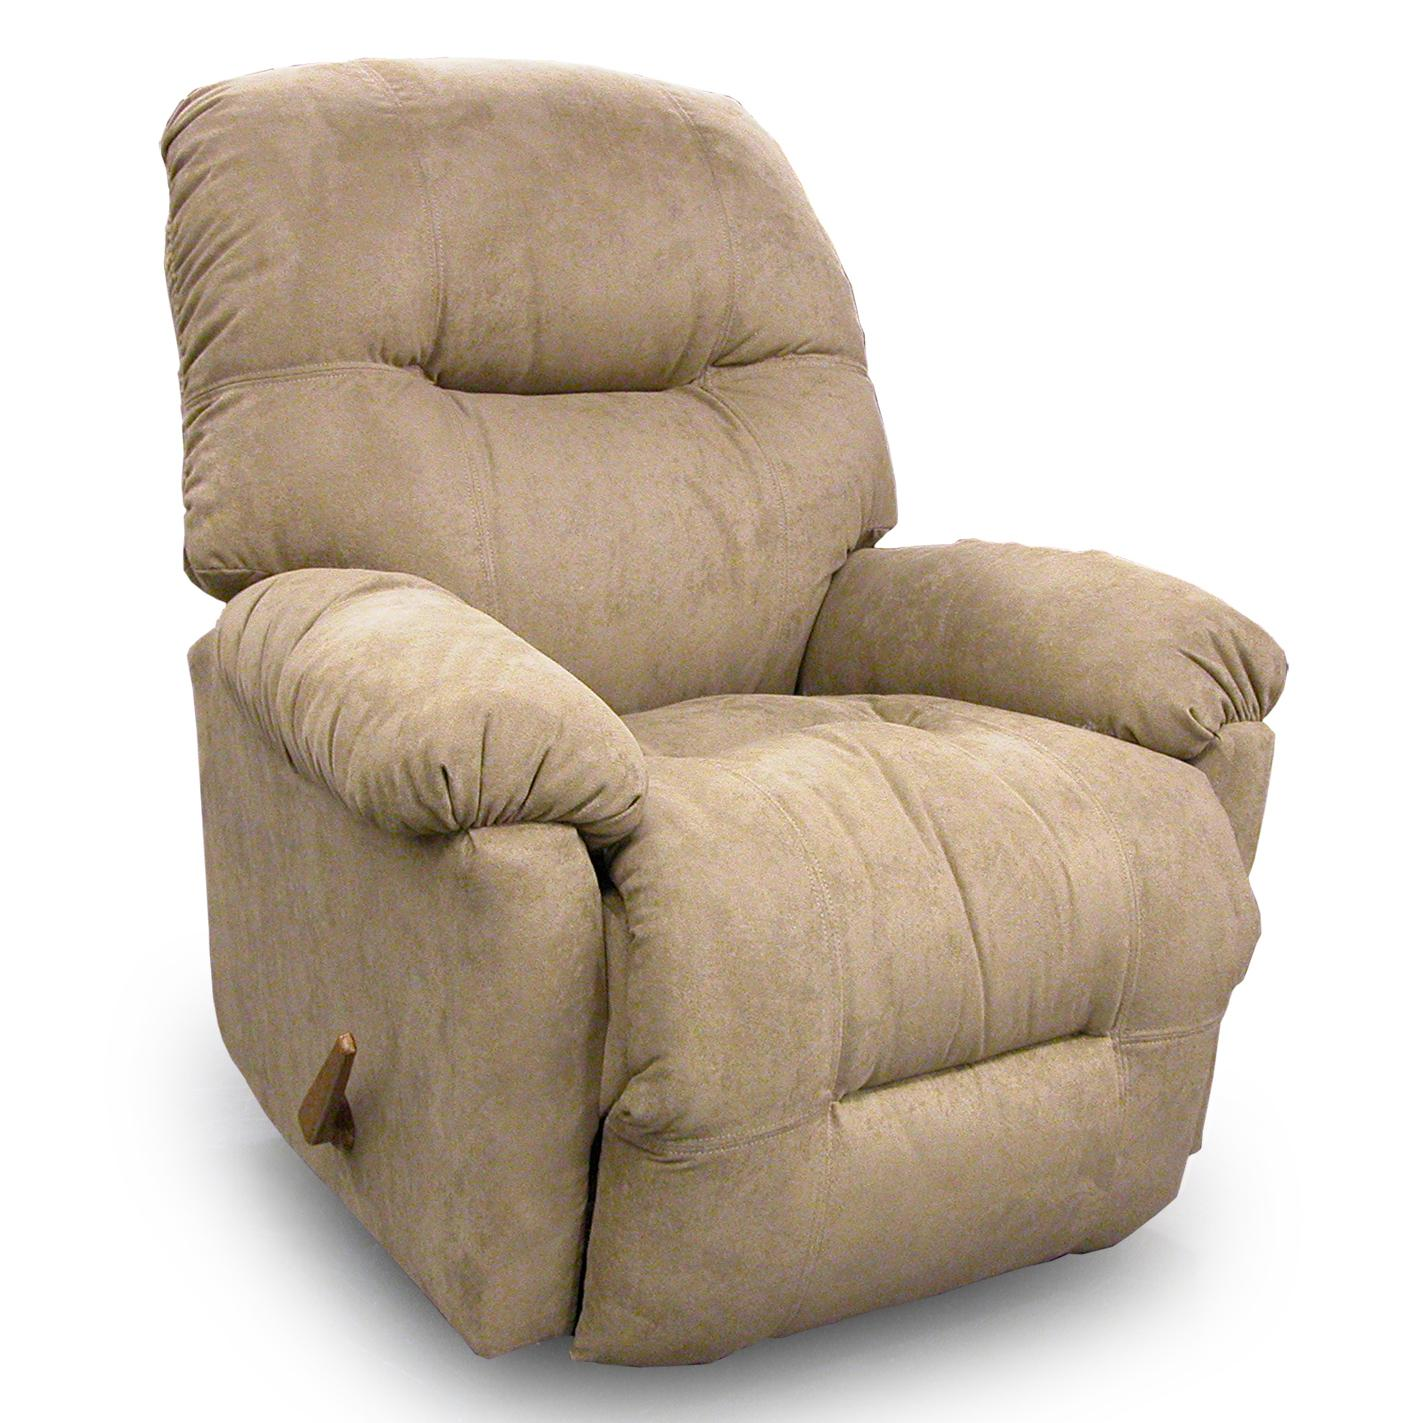 recliner chairs best home furnishings recliners - petite wynette power lift recliner - item CQUCFNB